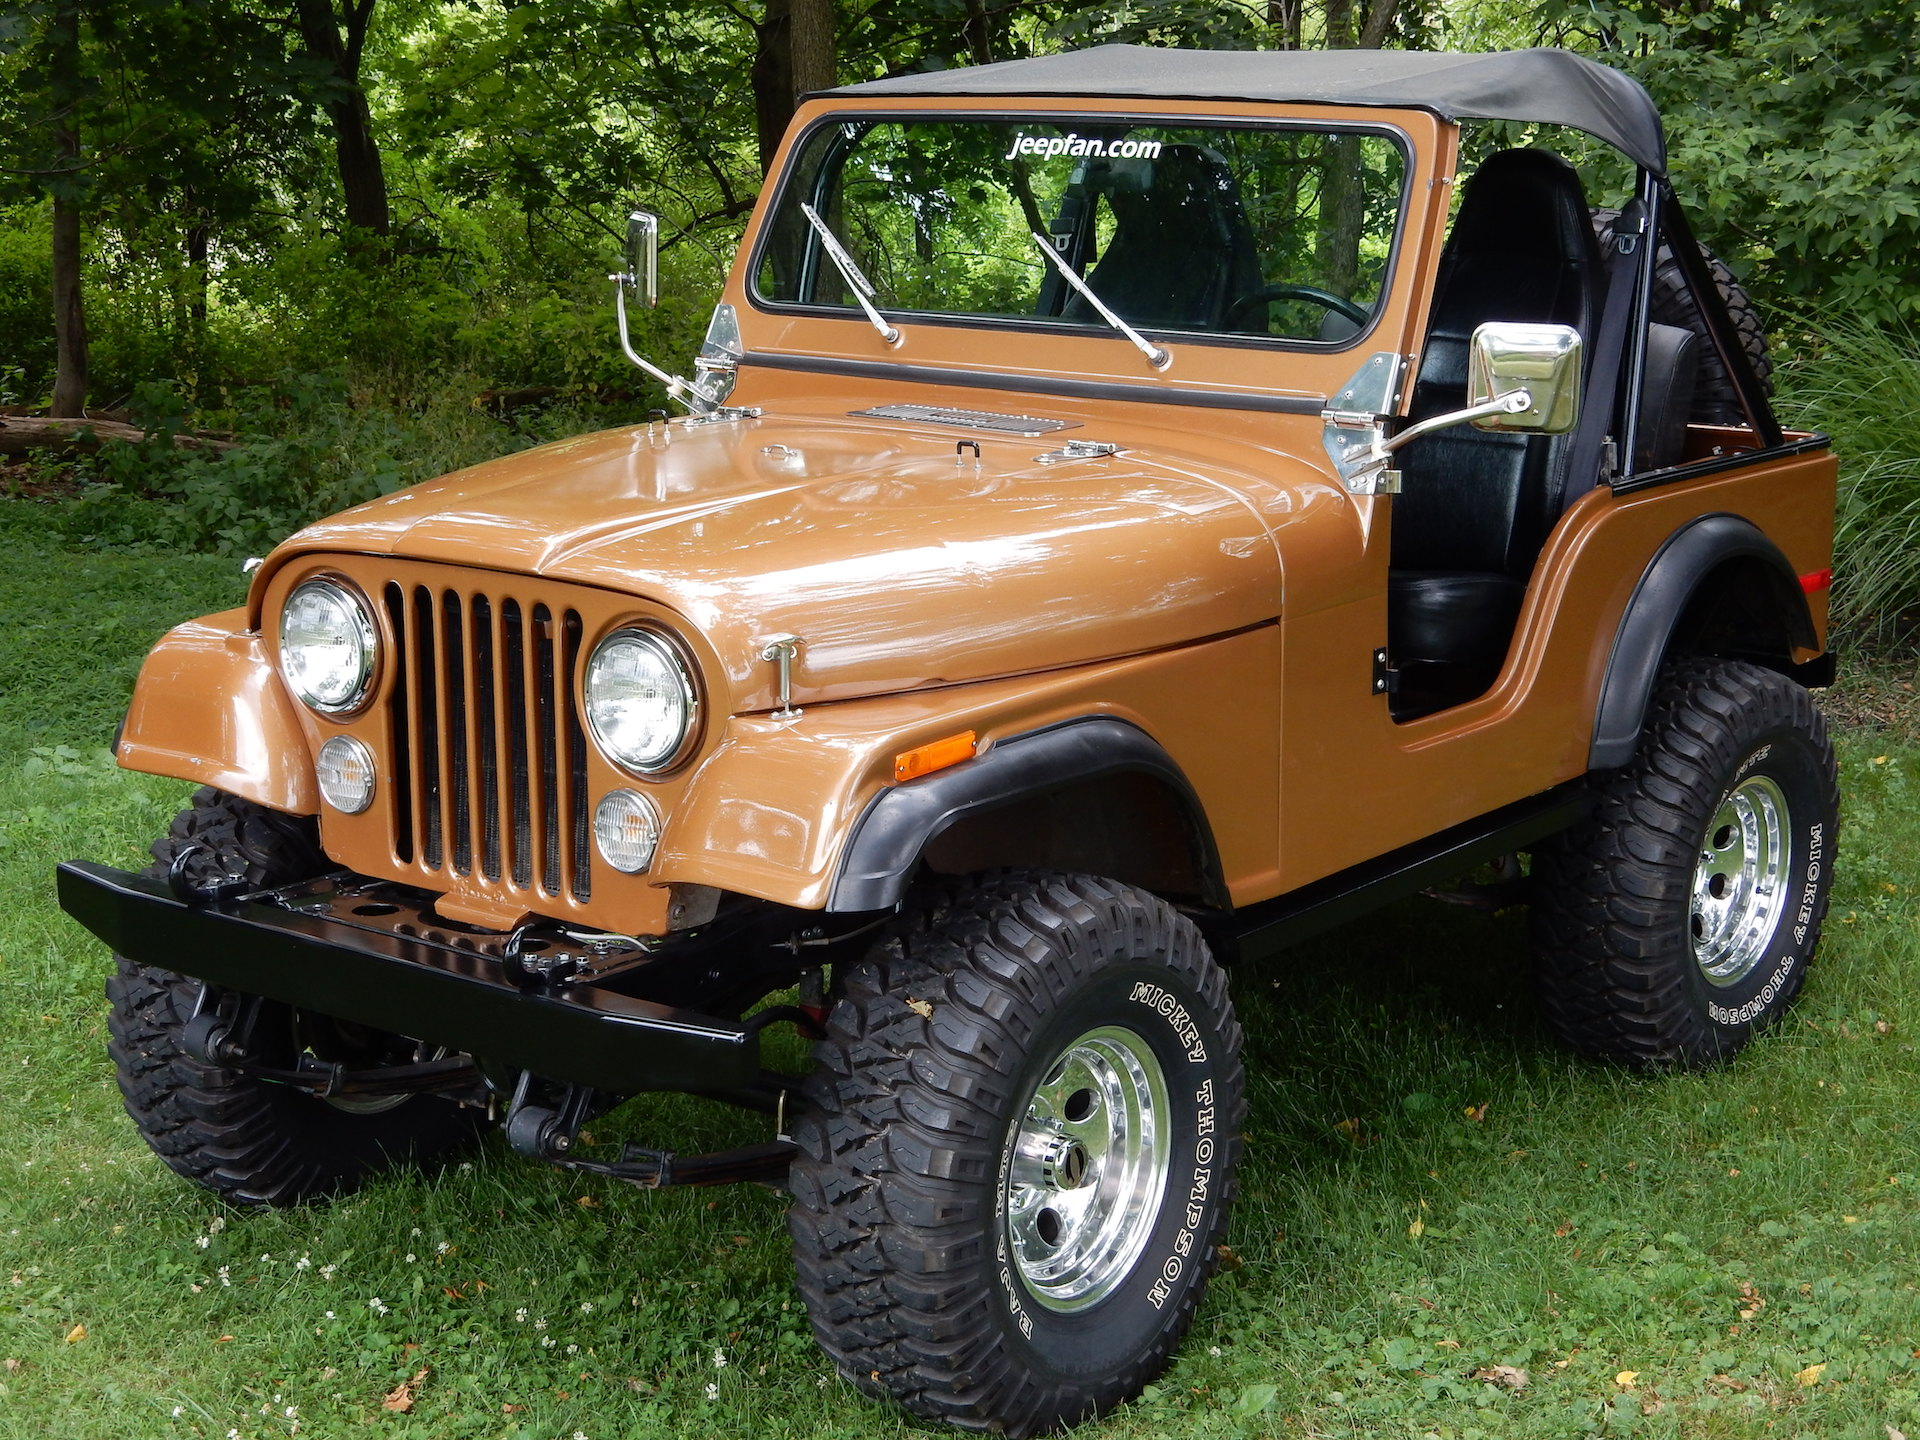 1997 Jeep Wrangler Lift Kit >> Old Man Emu YJ Springs on a CJ Lift Conversion | jeepfan.com